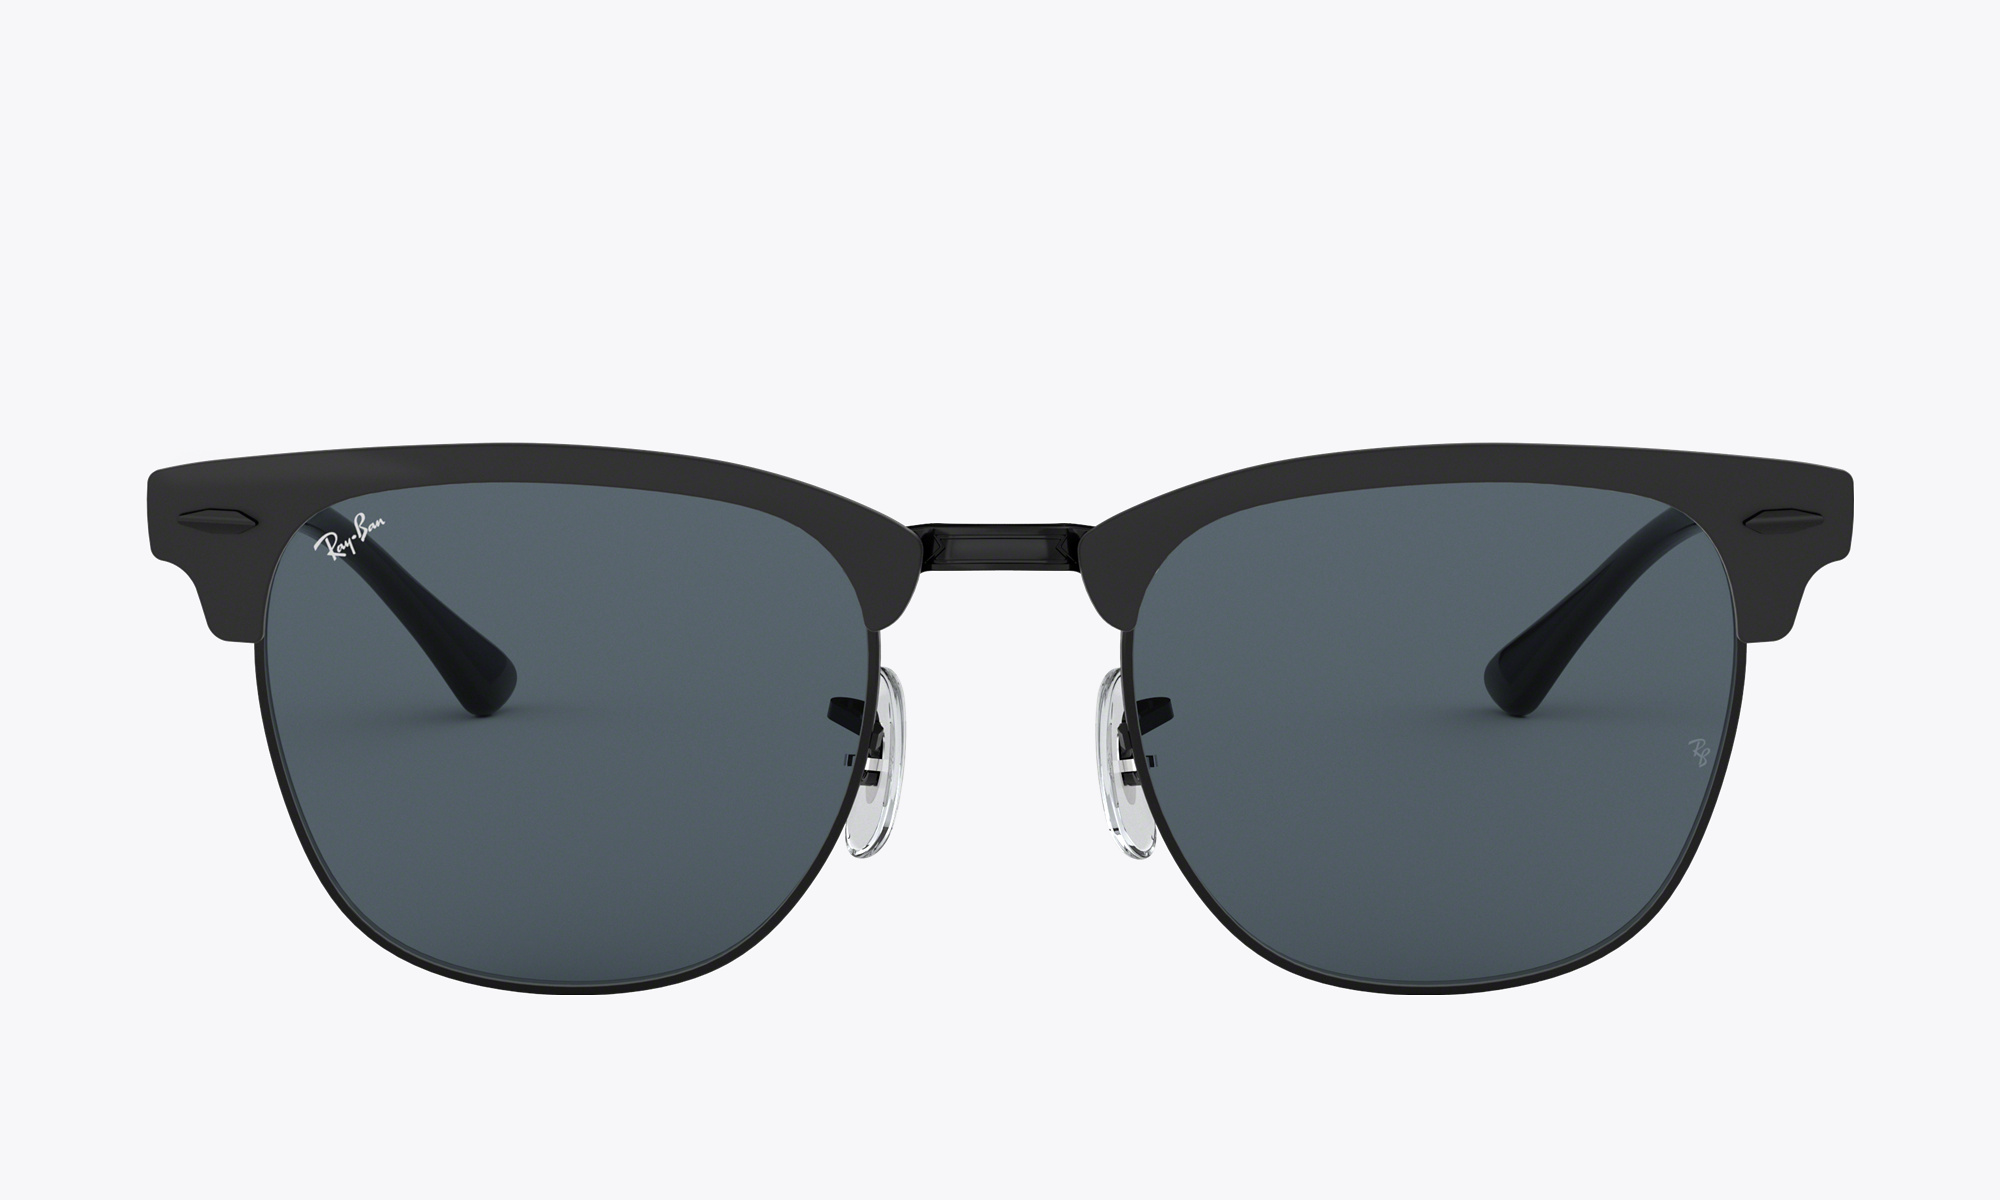 Image of Ray-Ban CLUBMASTER METAL color Black